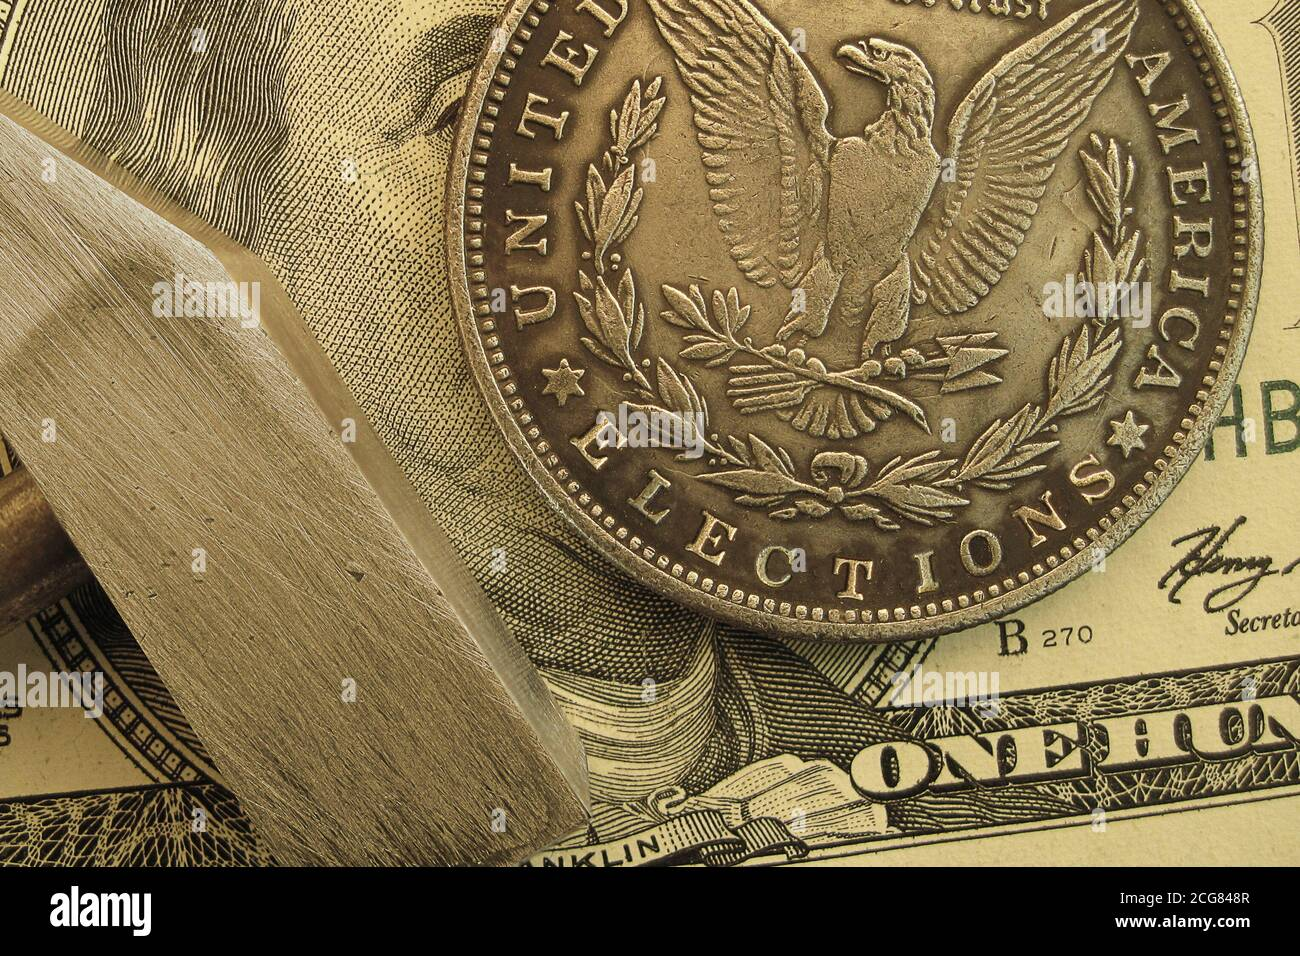 An American dollar coin with a graving text Elections. Voting campaign concept Stock Photo